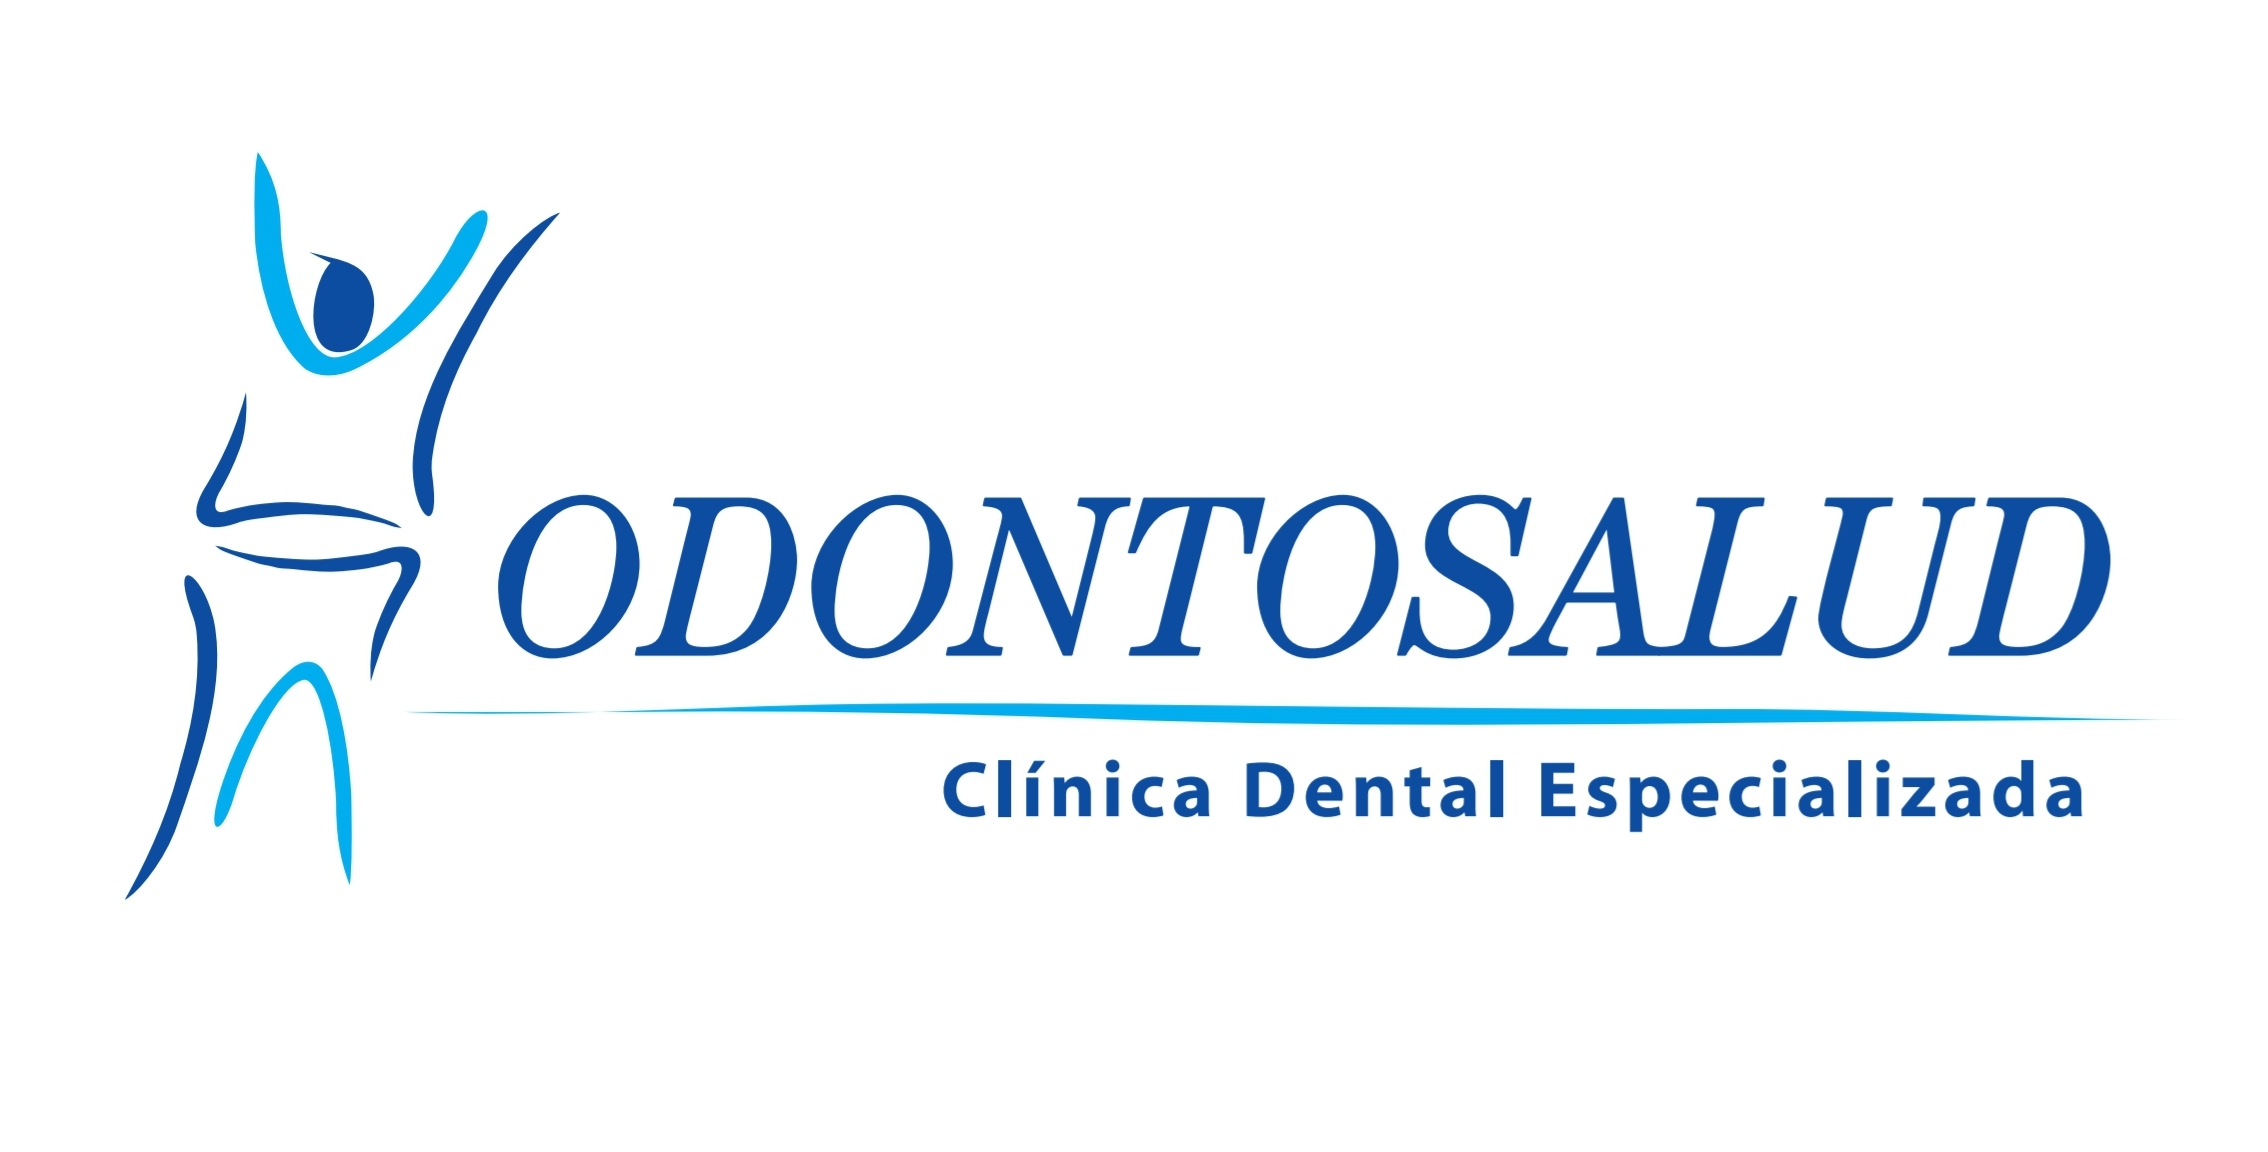 Odontosalud - Clínica Dental Especializada